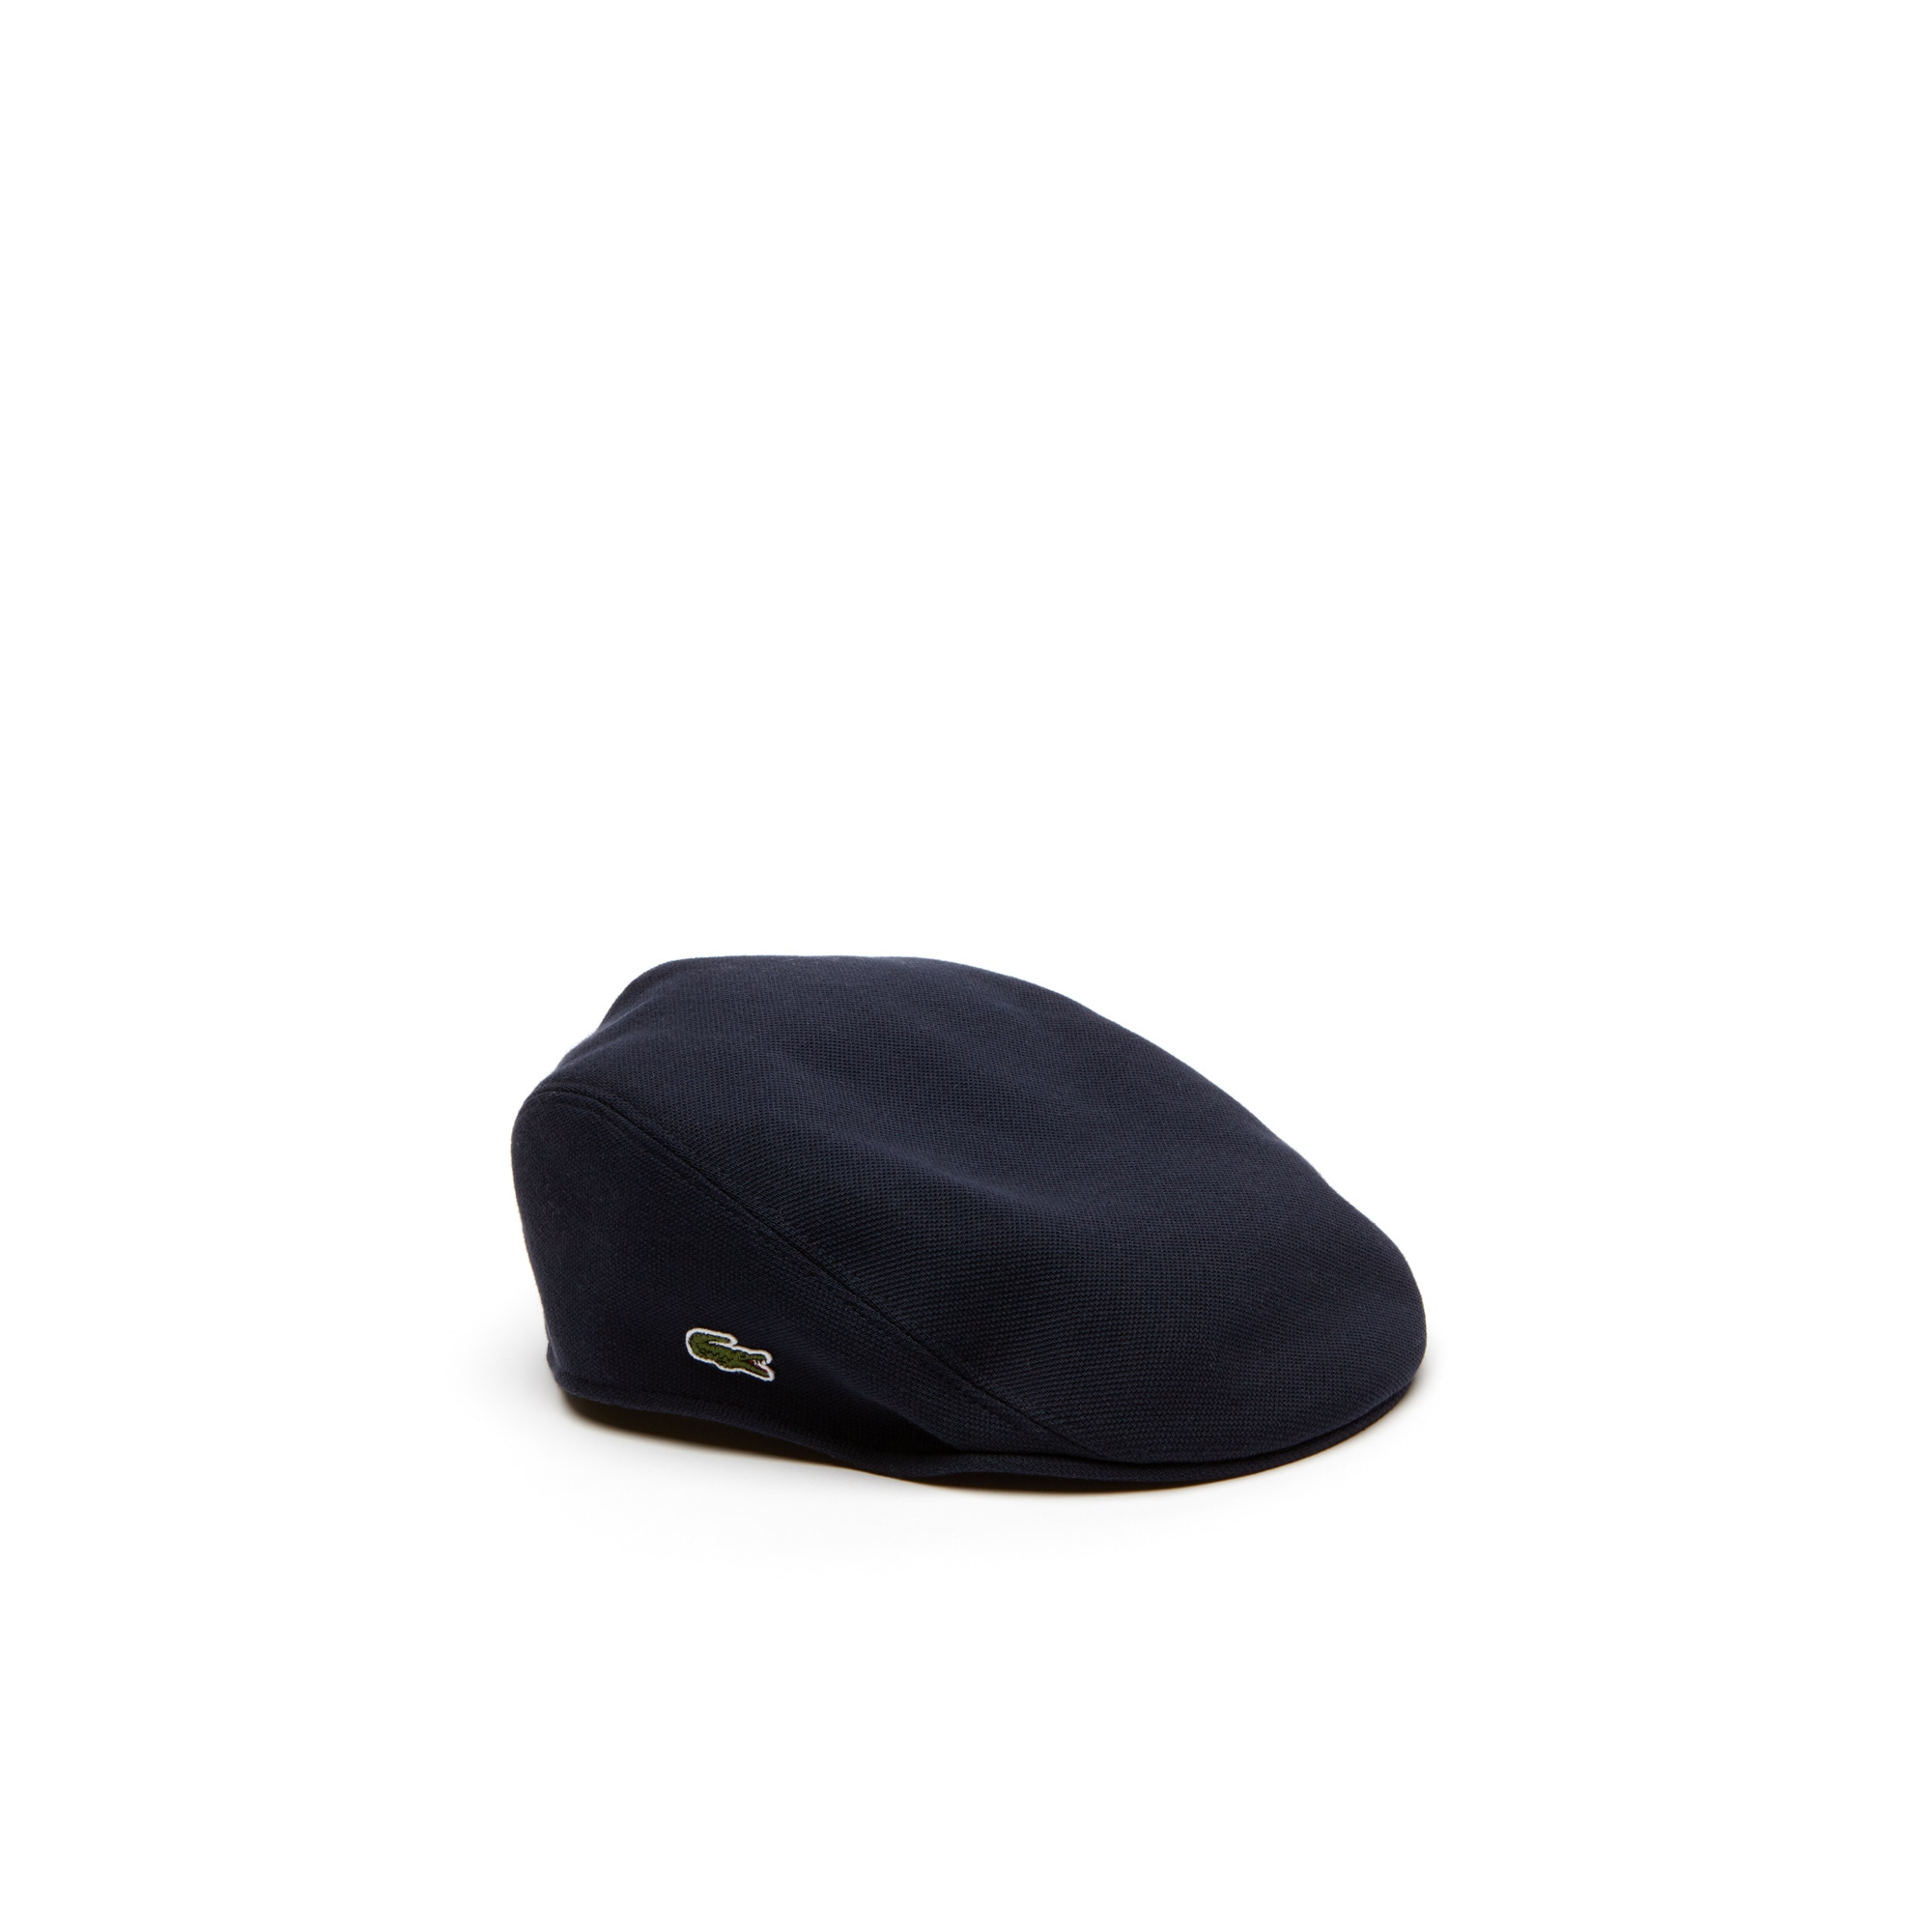 Men's Cotton flat cap